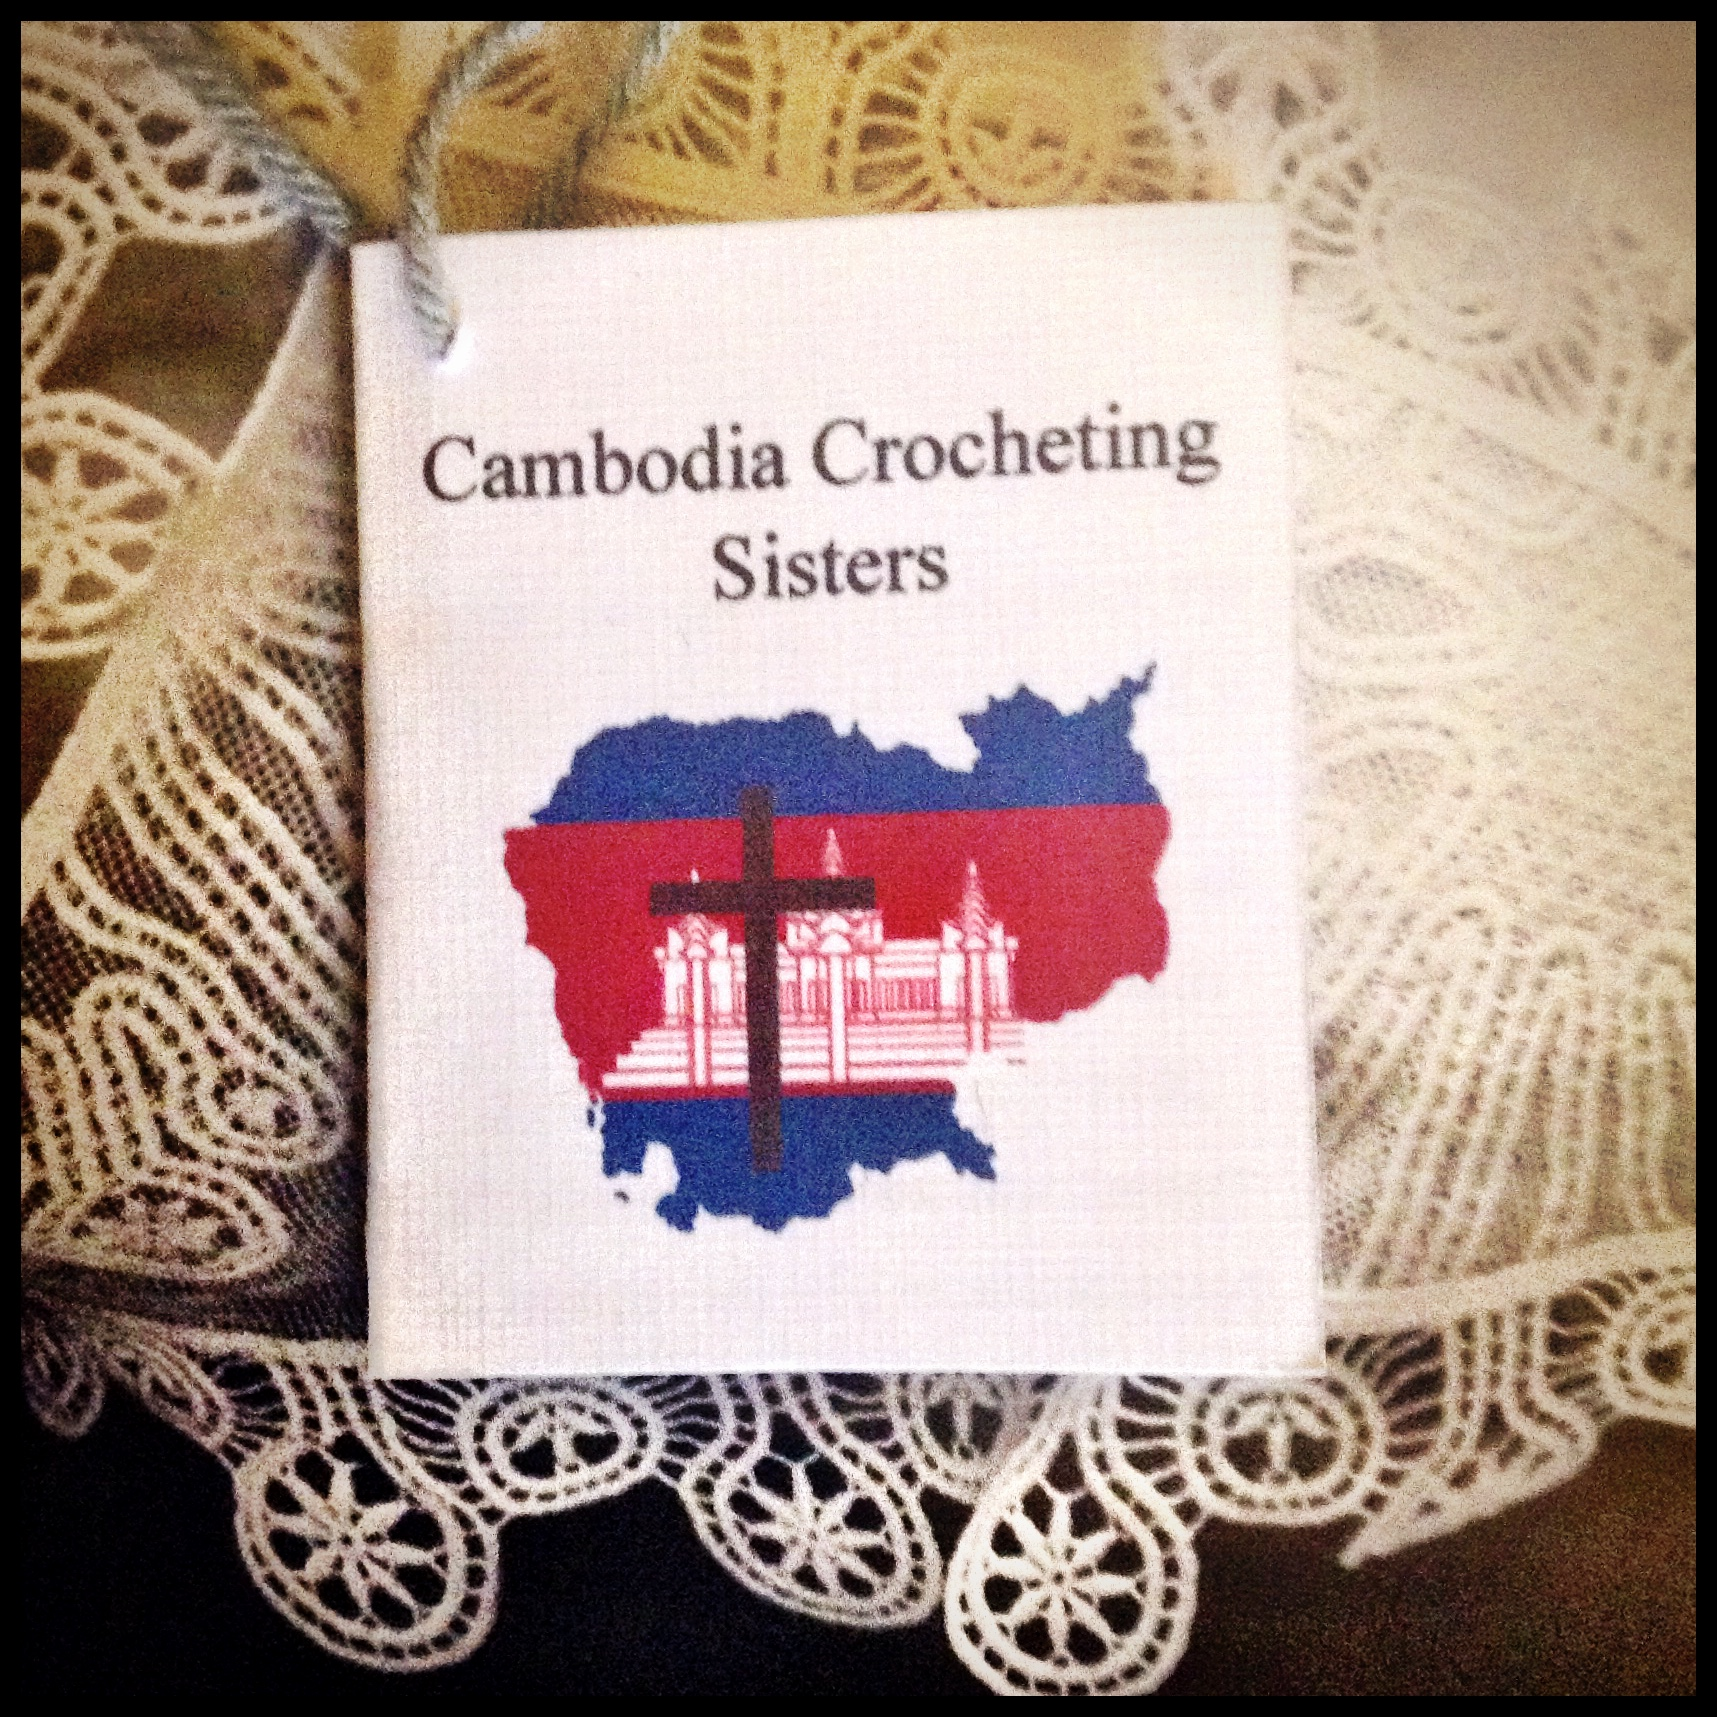 Cambodia Crocheting Sisters